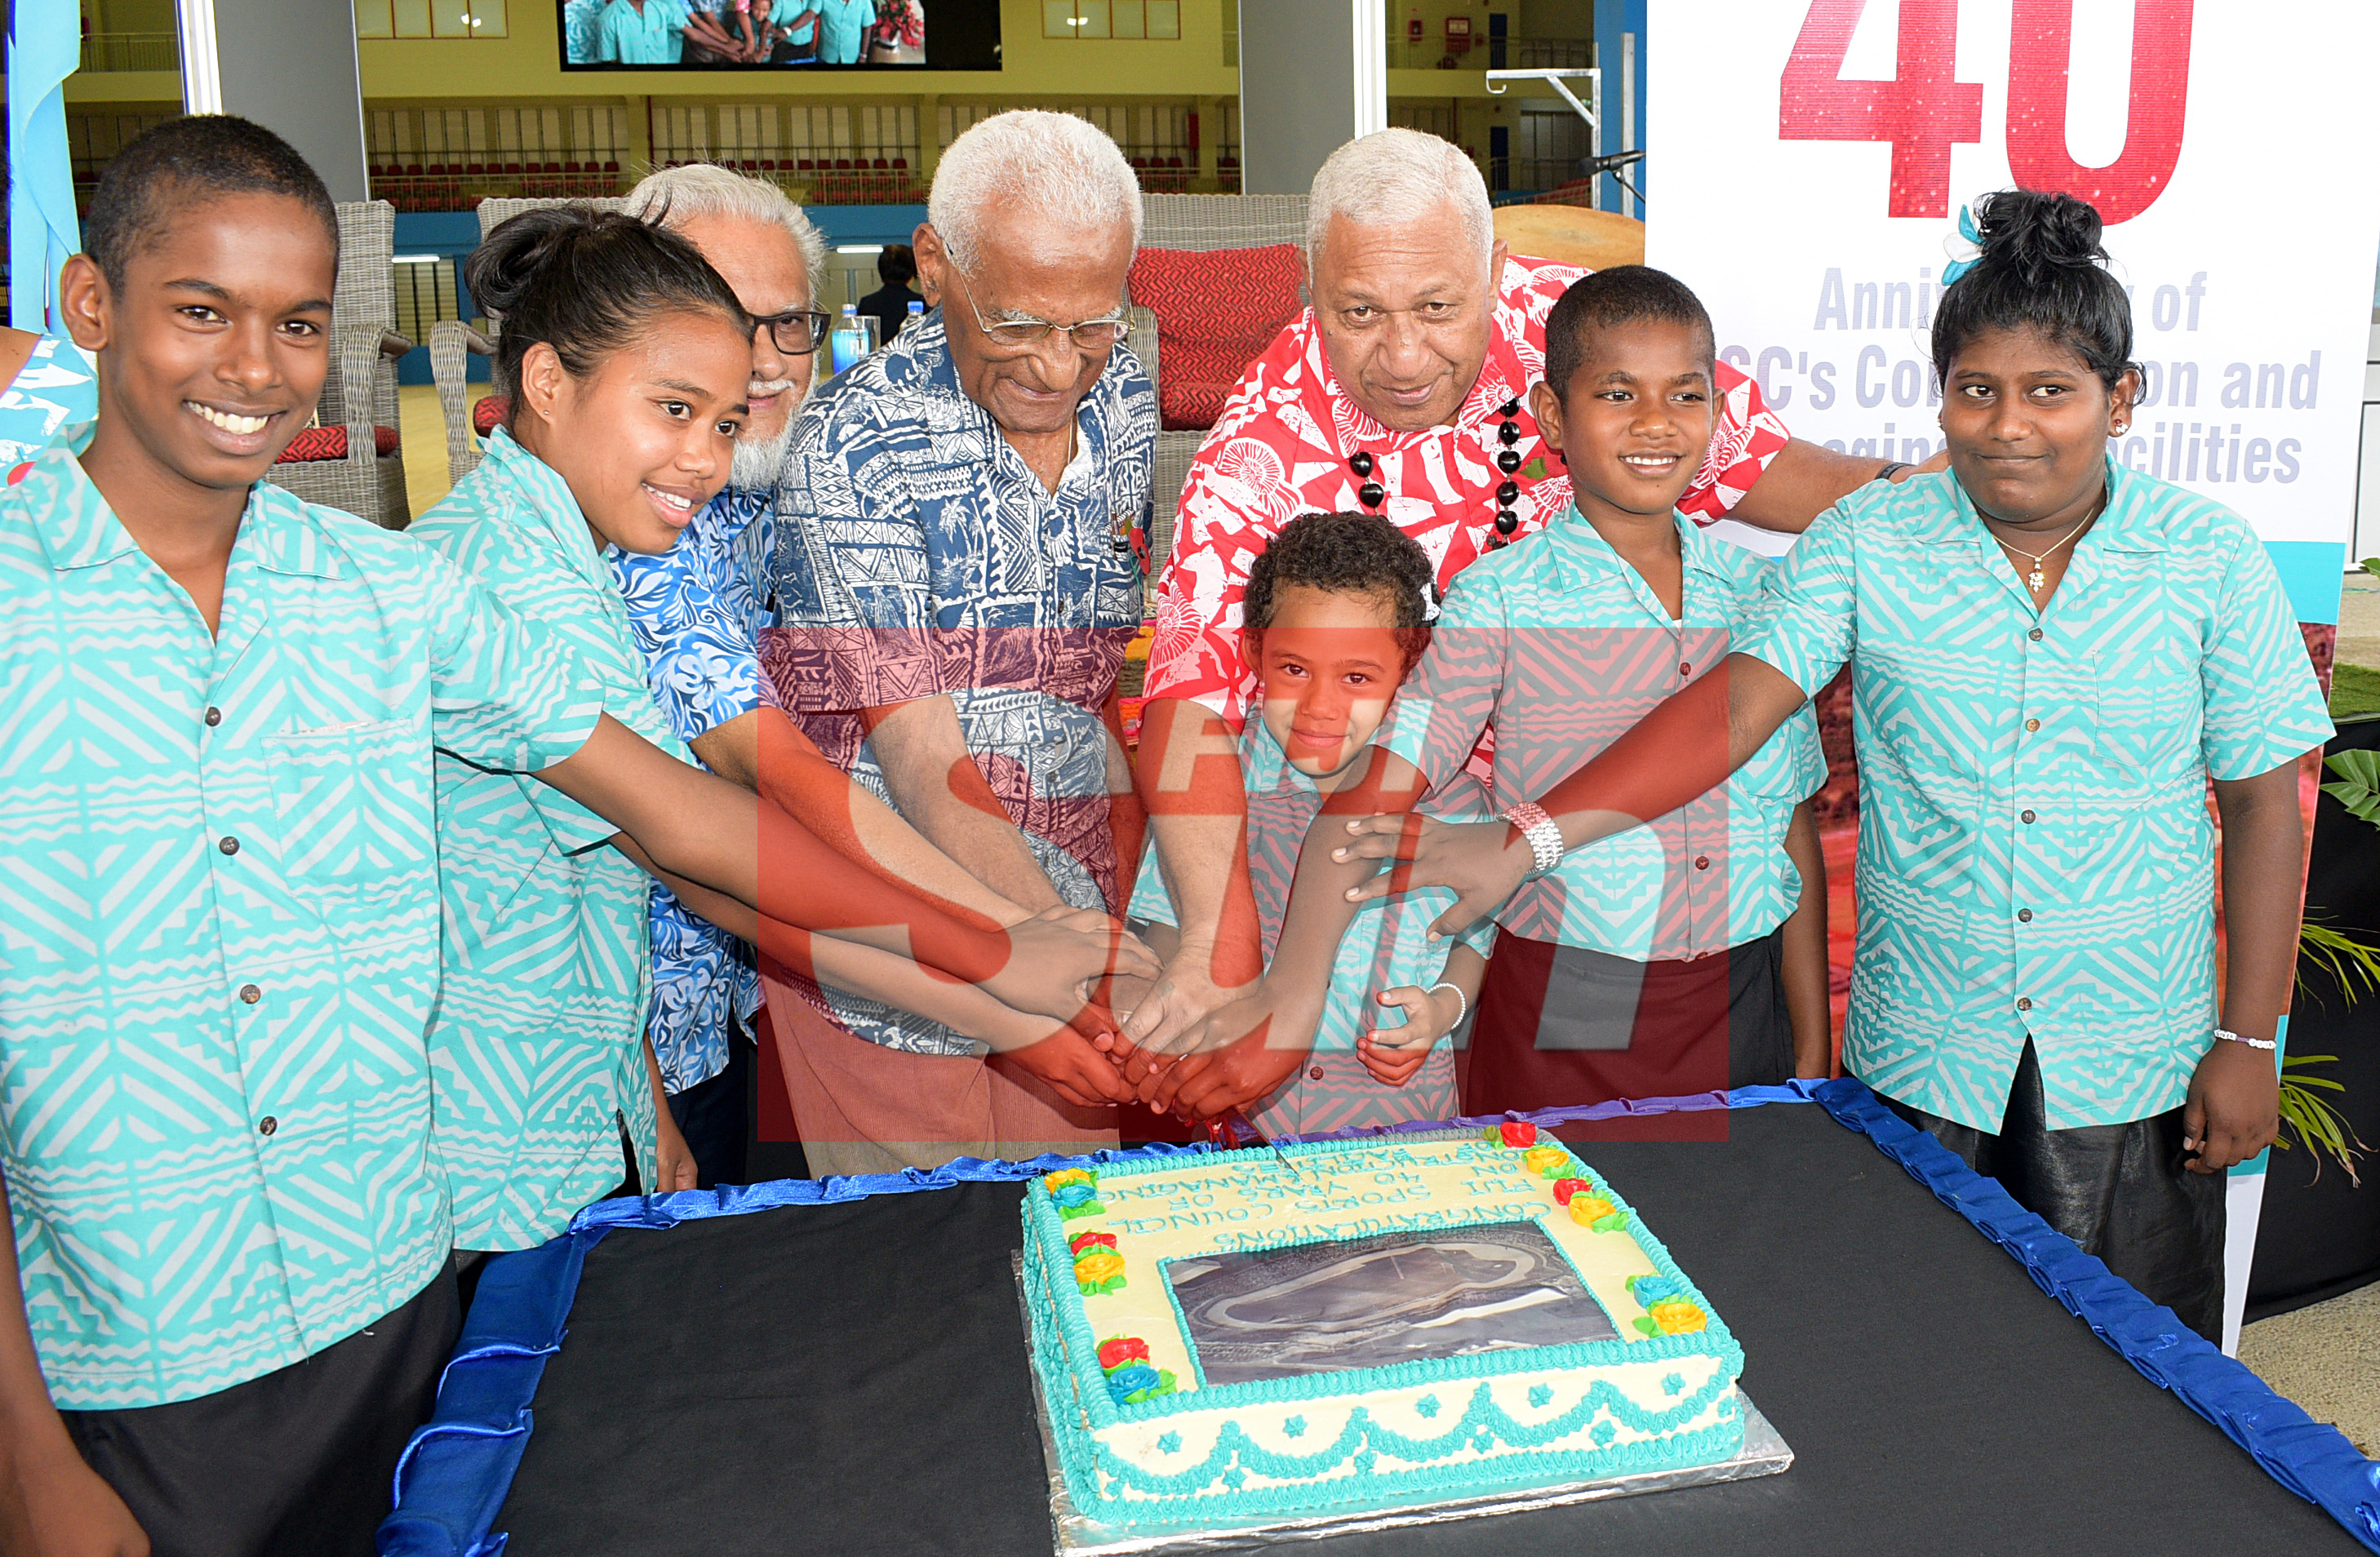 Prime Minister Voreqe Bainimarama, former Fiji Sports Council board members, Ikbal Jannif and Manu Korovulavula and St. Christopher home children cut the cake to make 40 years of Fiji Sports Council and re-opening of renovated Vodafone Arena on November 8, 2019. Photo: Ronald Kumar.